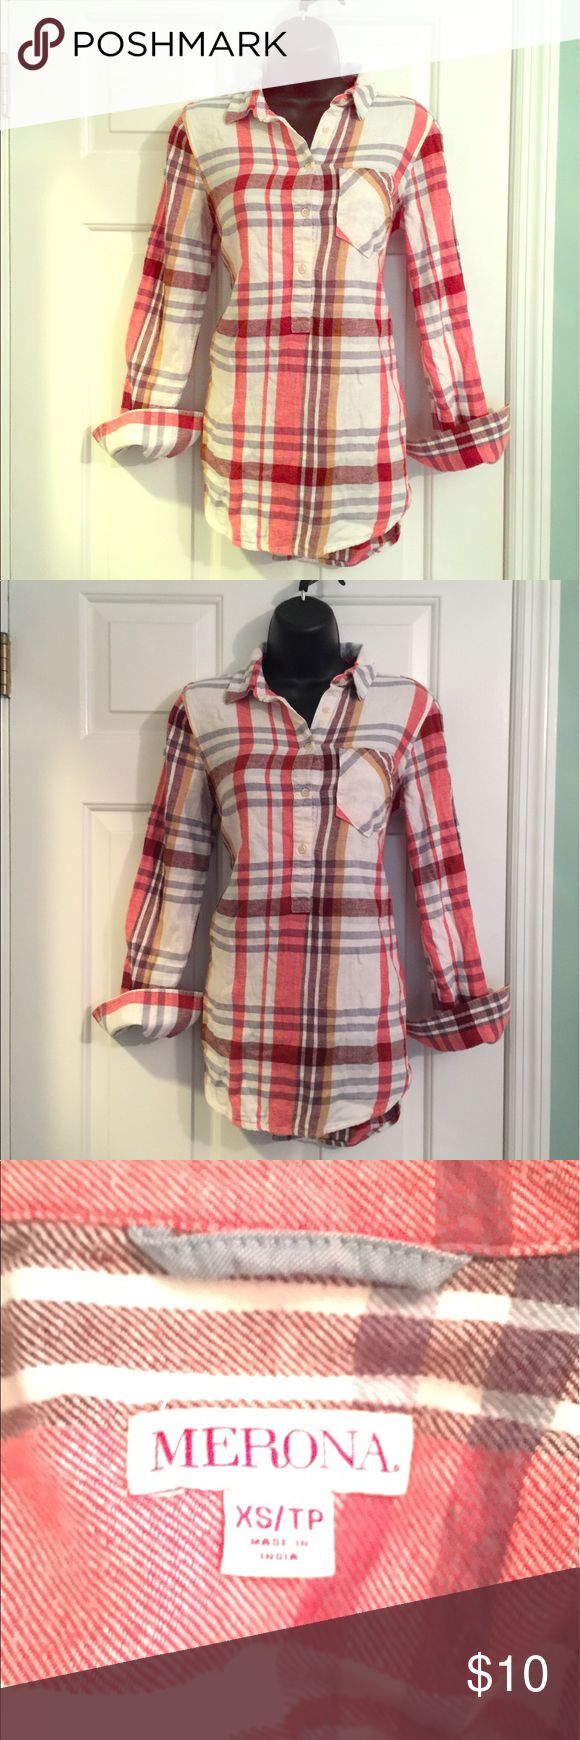 Flannel tunic EUC cotton flannel tunic. Long enough to wear with just leggings or perfect w skinny jeans. No rips, holes or stains. Pet free, smoke free home. Tops